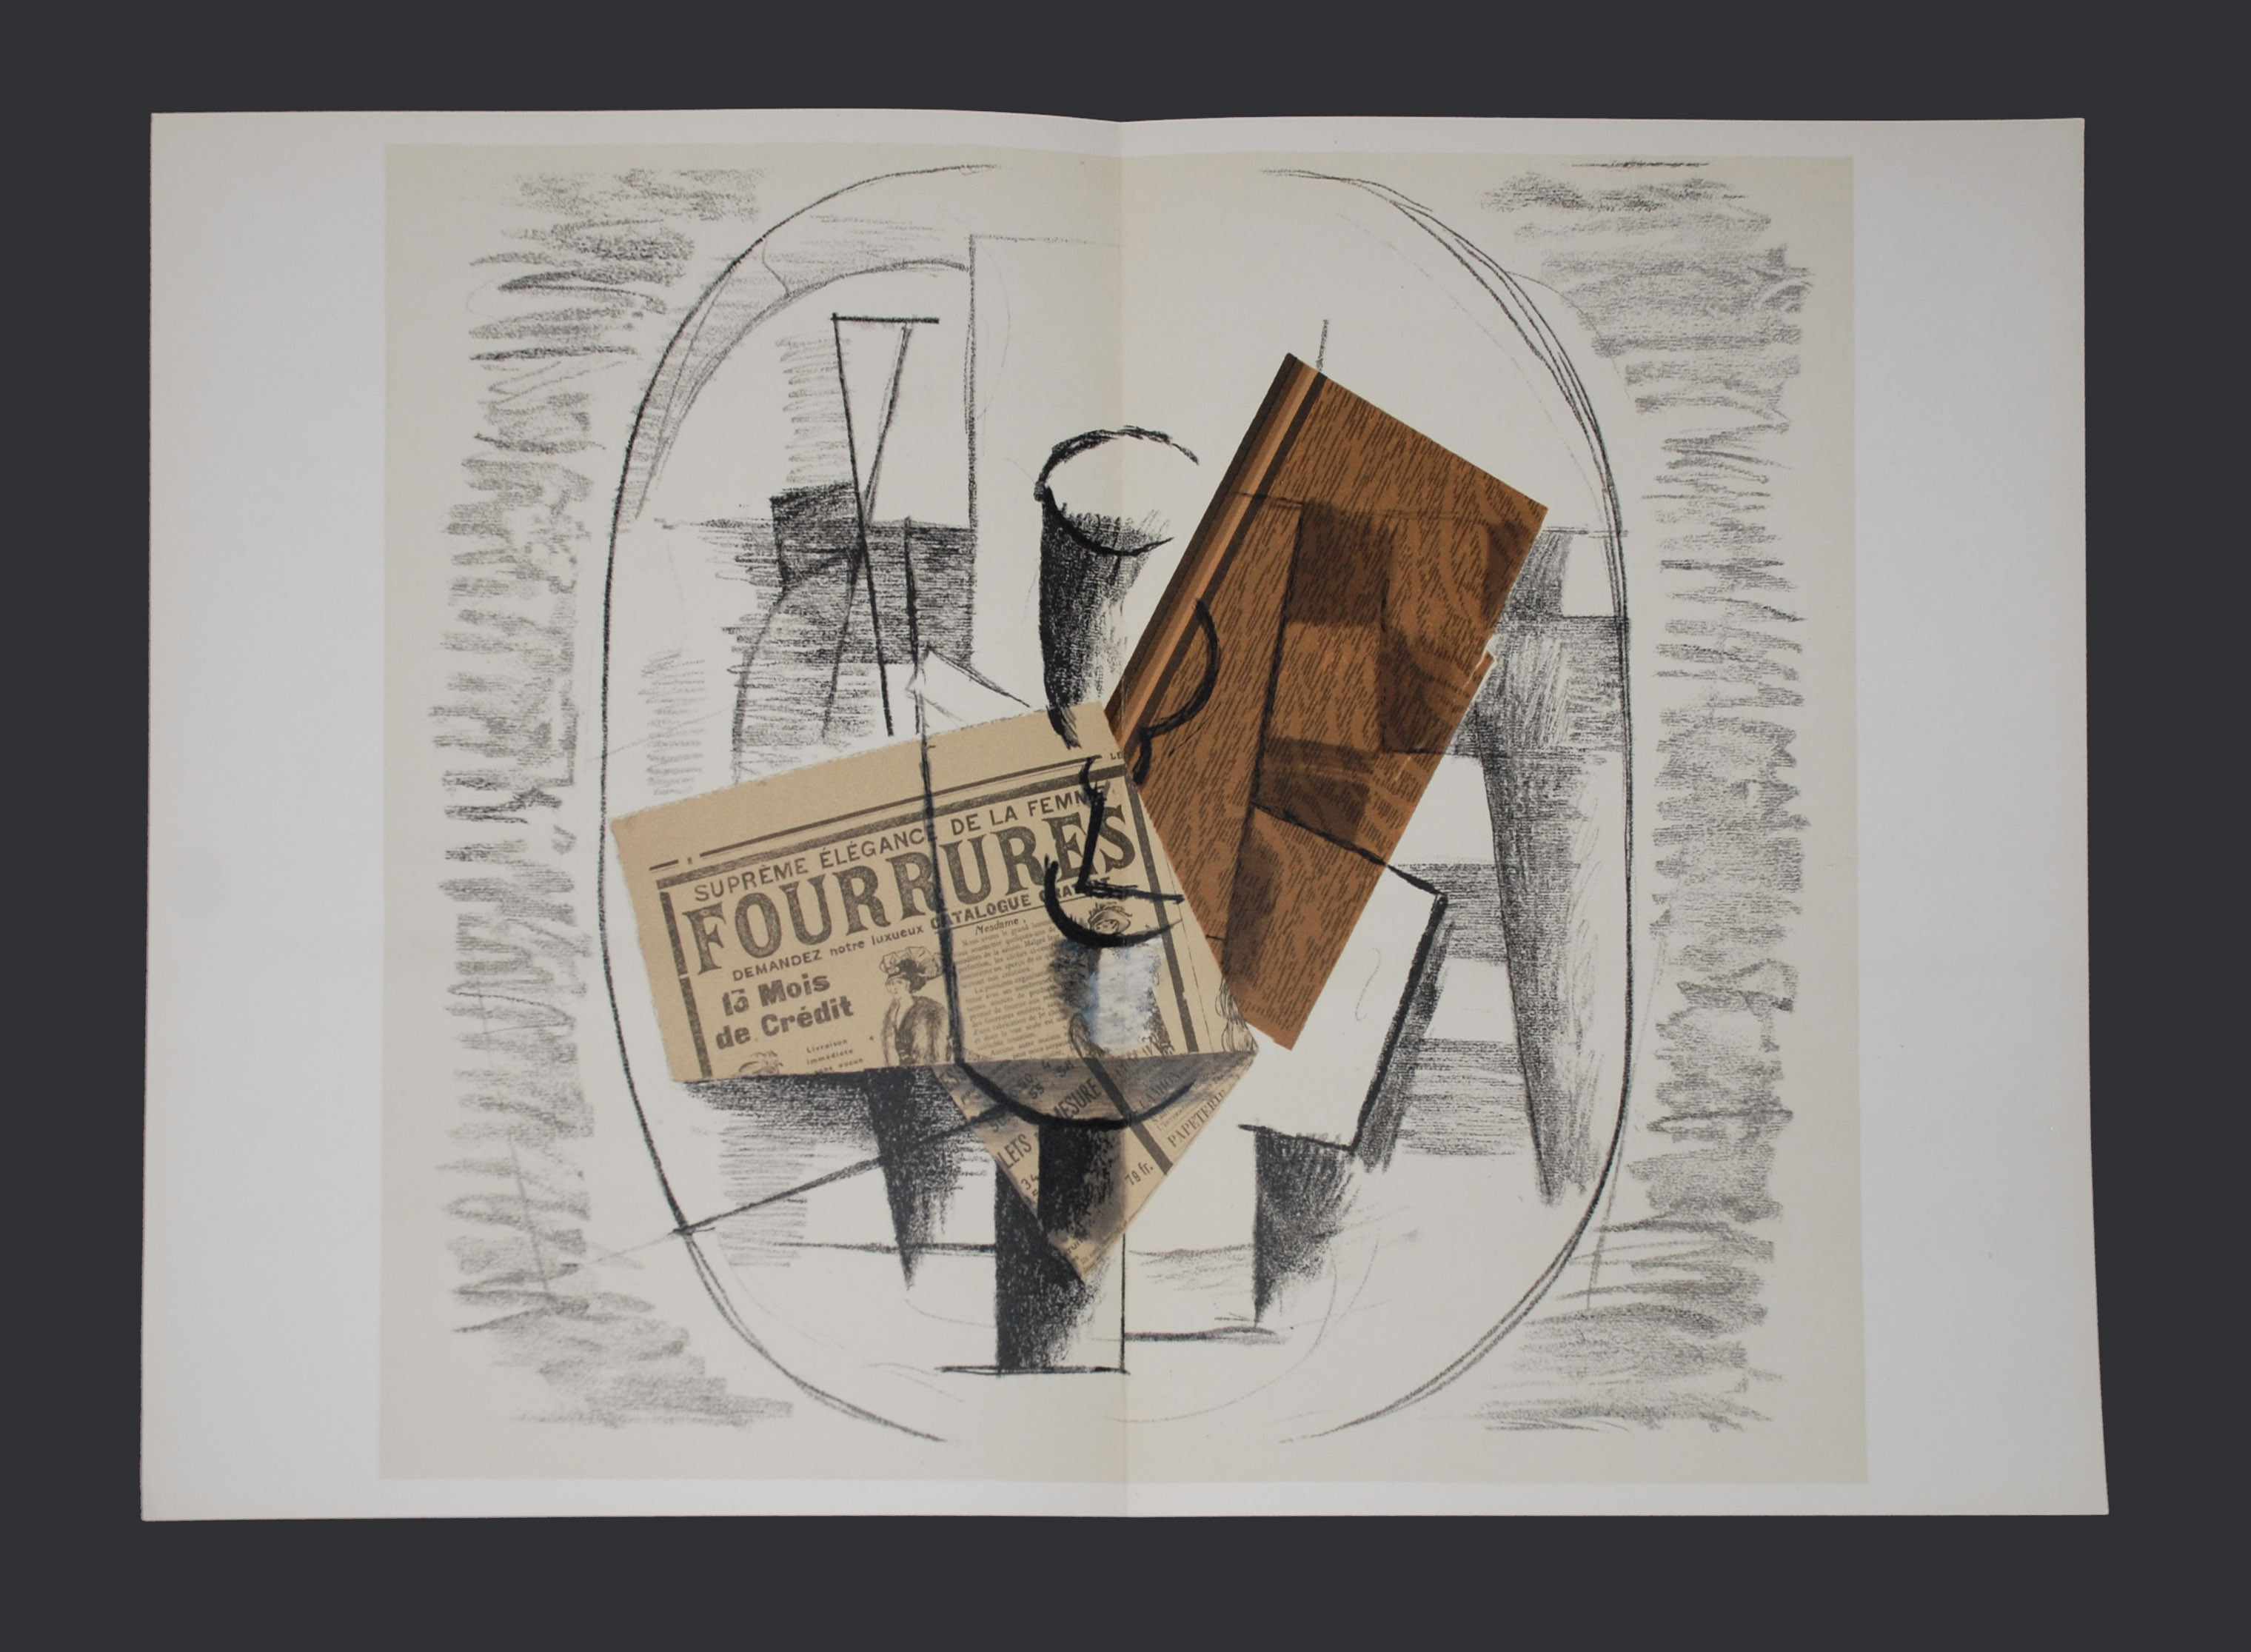 analysis of violin and candlestick by georges braque essay European art in the early 20th century violin and candlestick by georges braque, 1910: dream analysis.